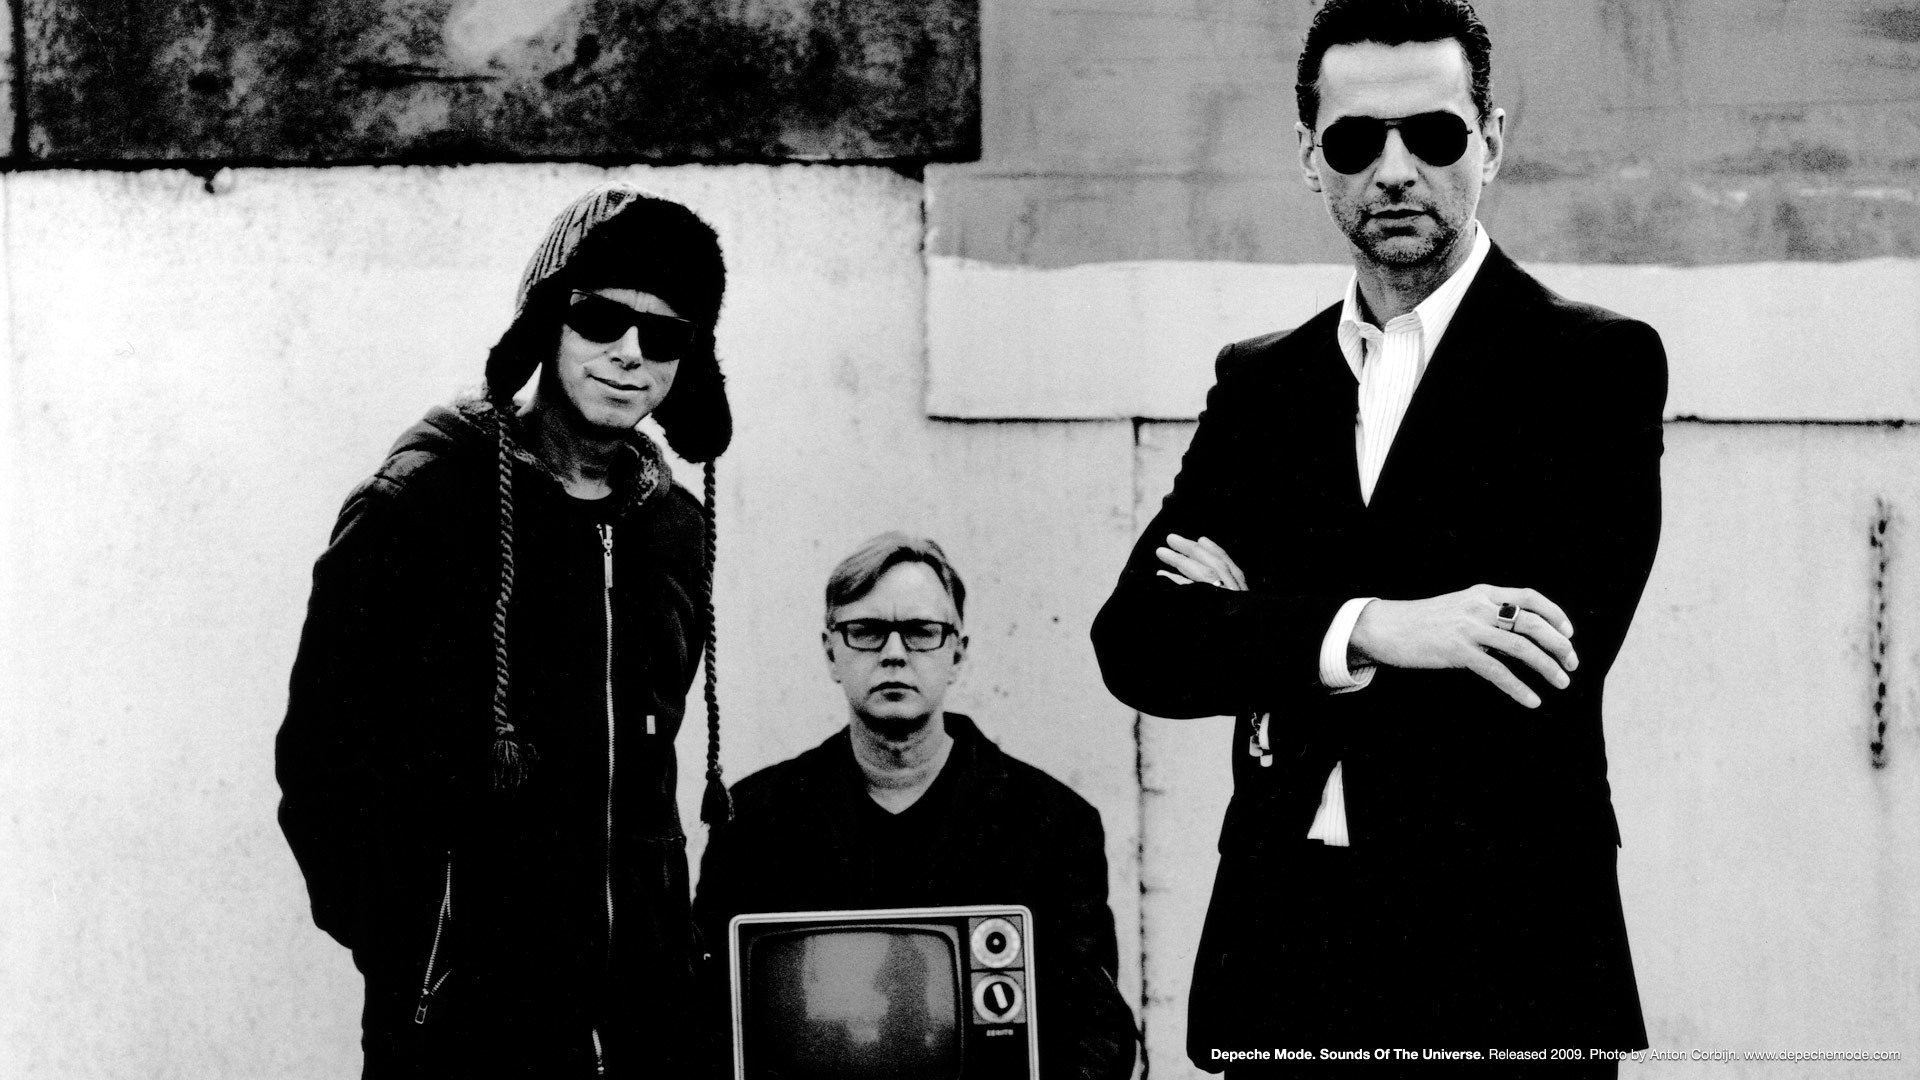 1920x1080 Depeche Mode, photo wallpaper from the official dm site: http://archives